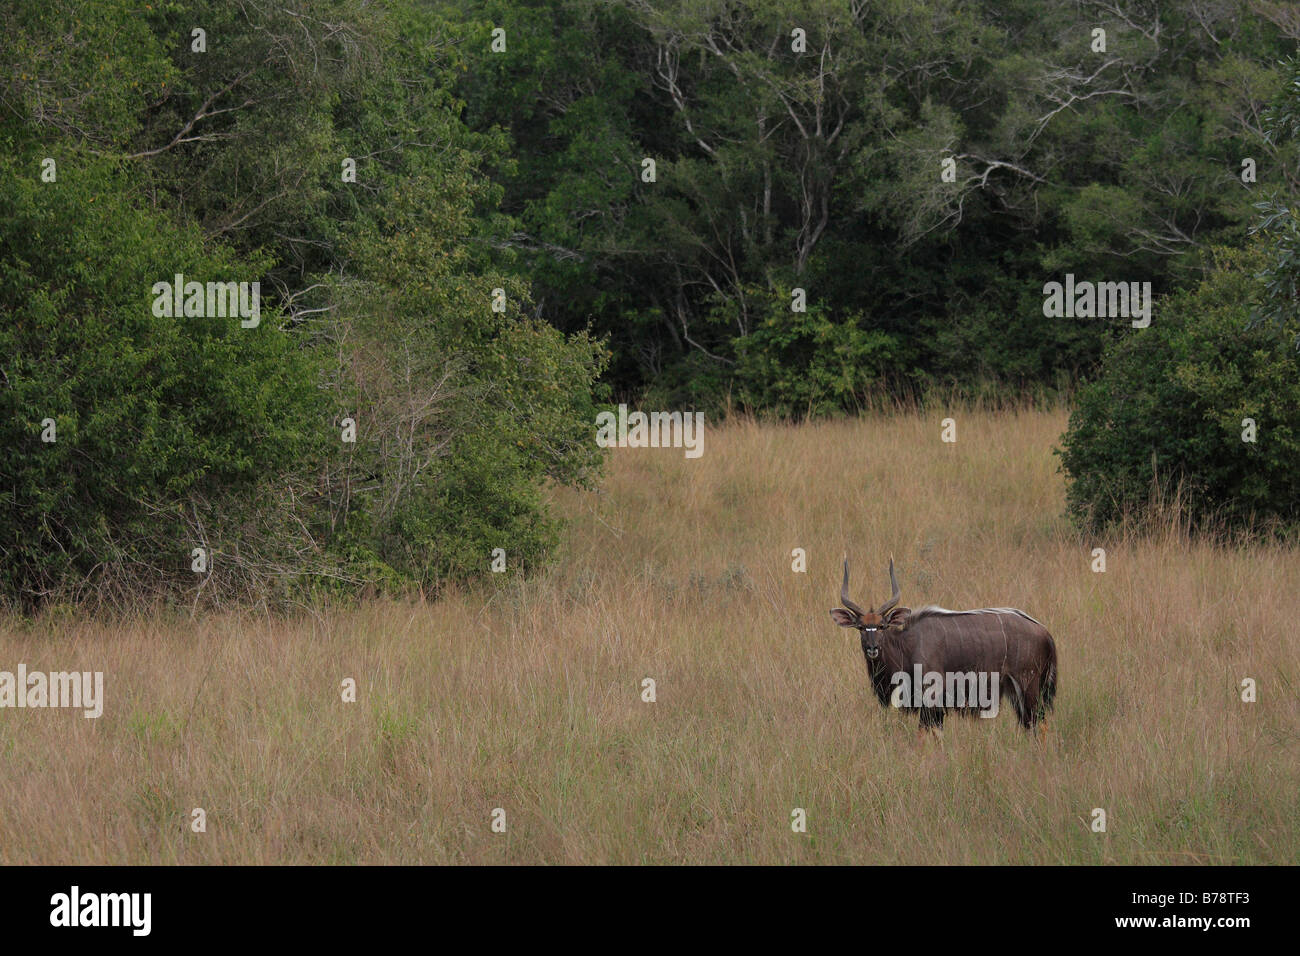 Scenic view of a lone Nyala ram in a bushland - Stock Image